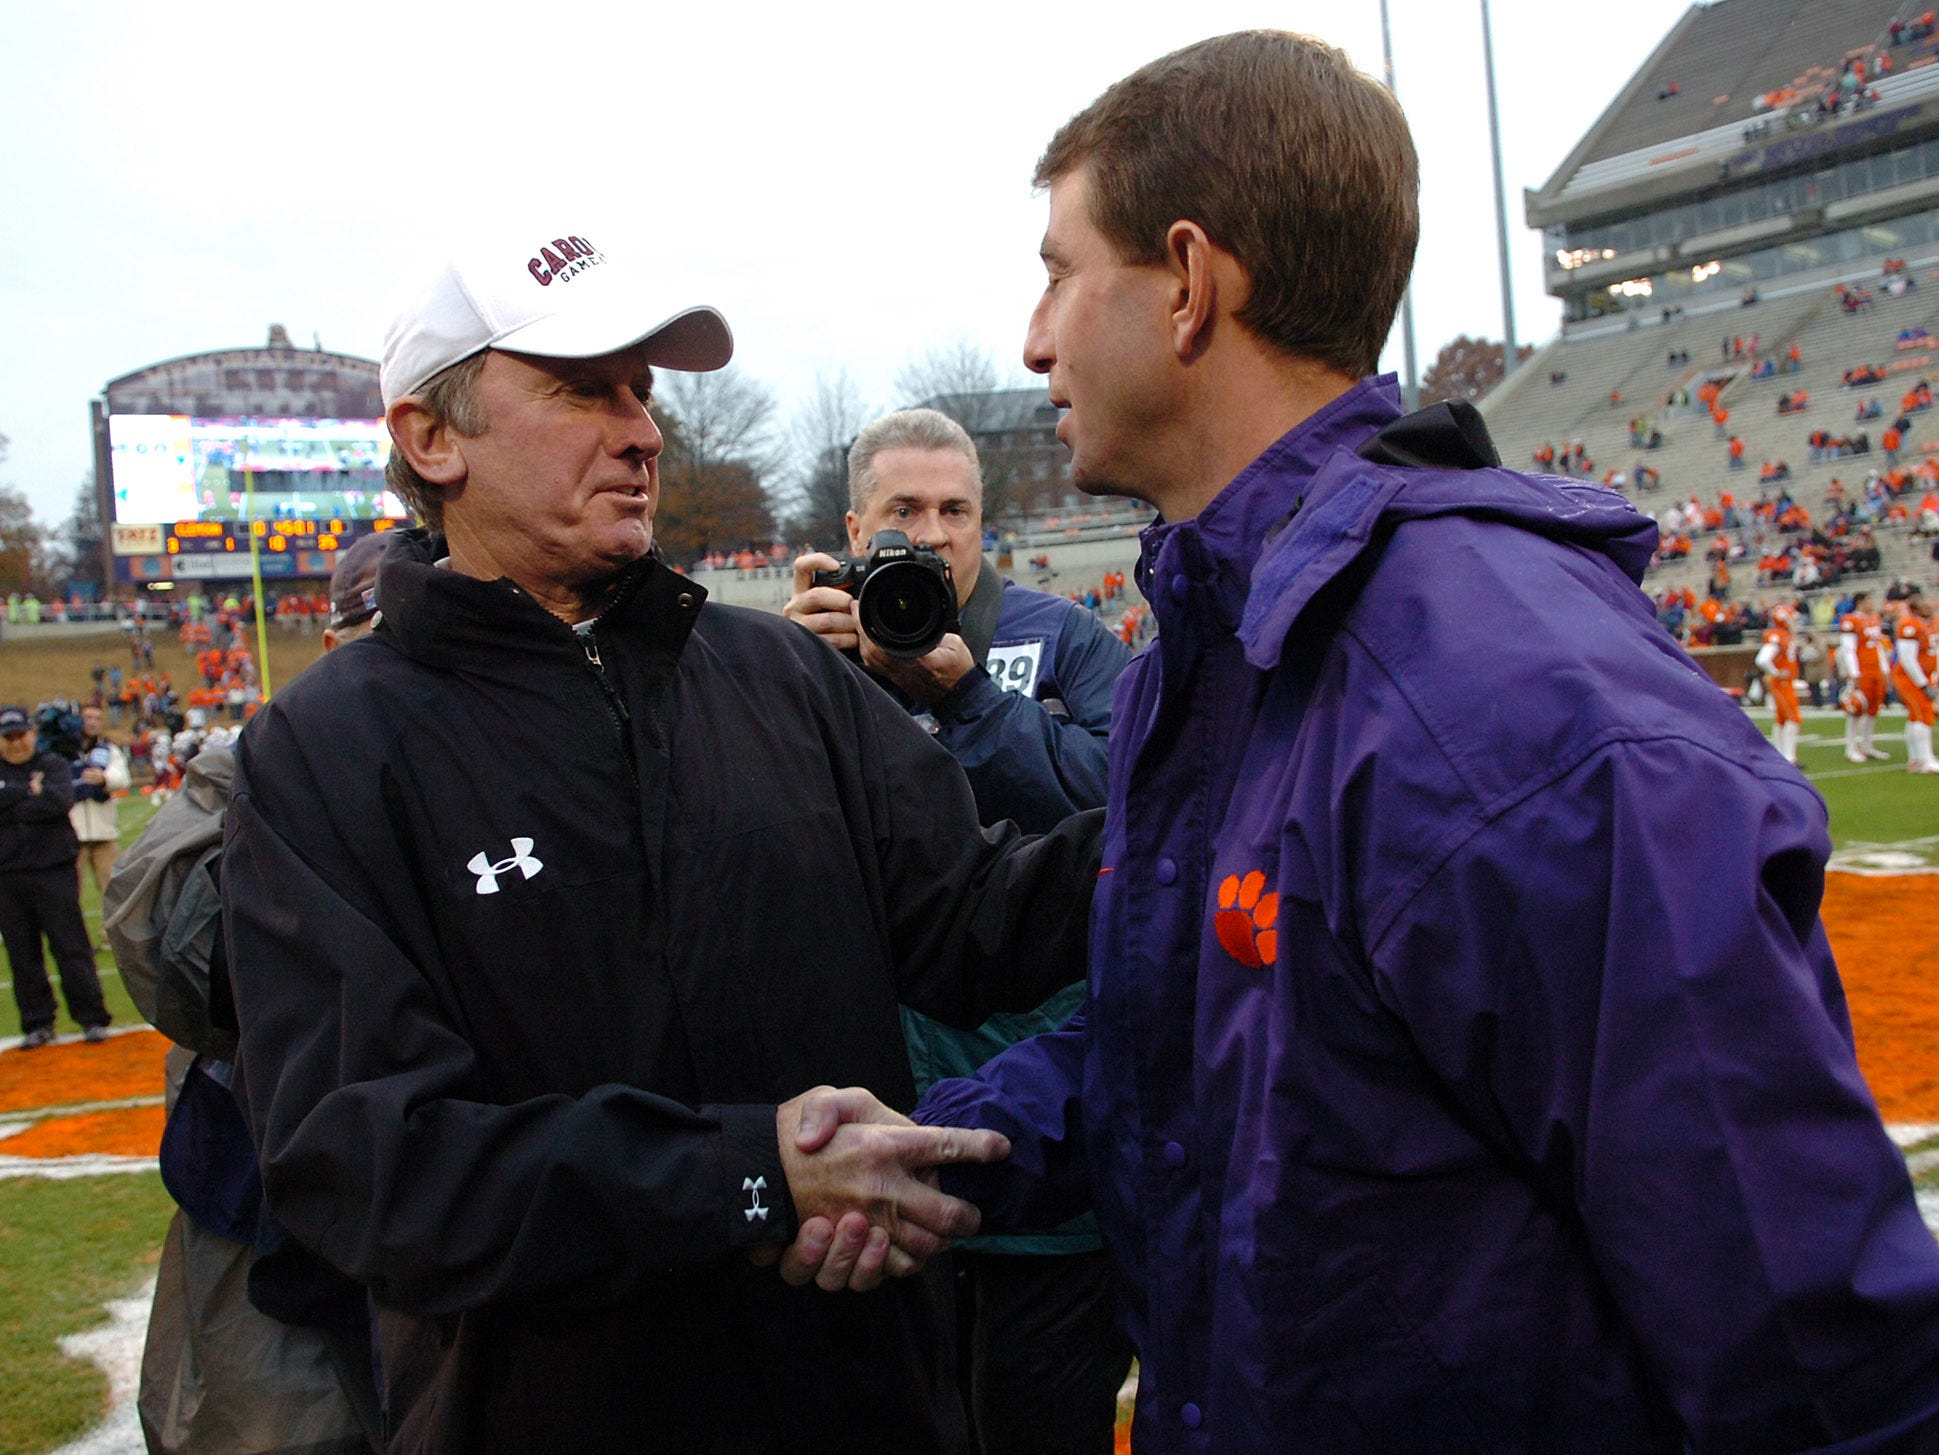 Clemson interim head coach Dabo Swinney, right, shakes hands with South Carolina head coach Steve Spurrier before the start of their game Saturday, November 29, 2008 at Clemson's Memorial Stadium.